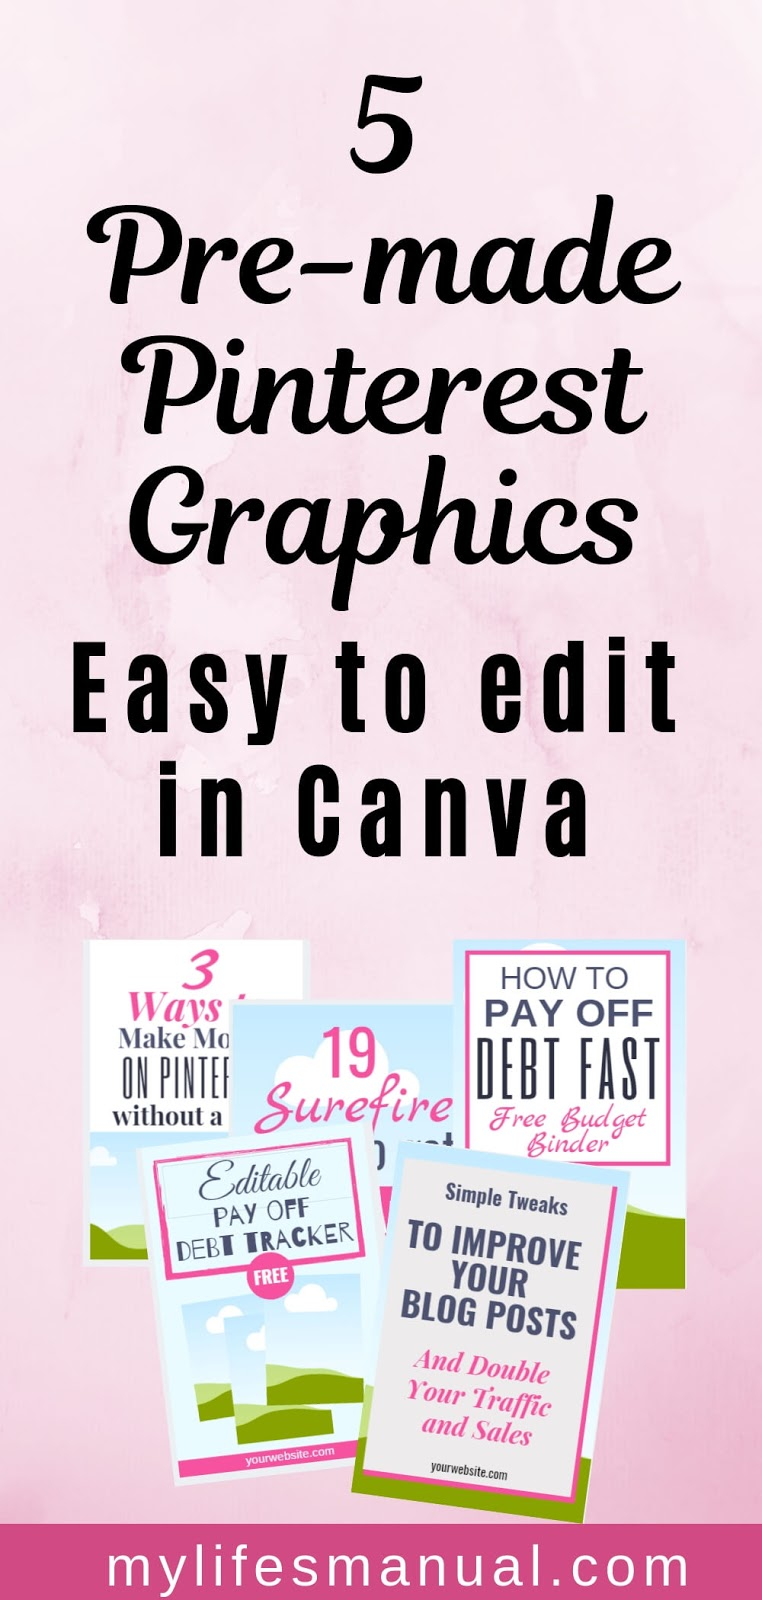 Pinterest templates in Canva. Subscribe to get new pins every month.